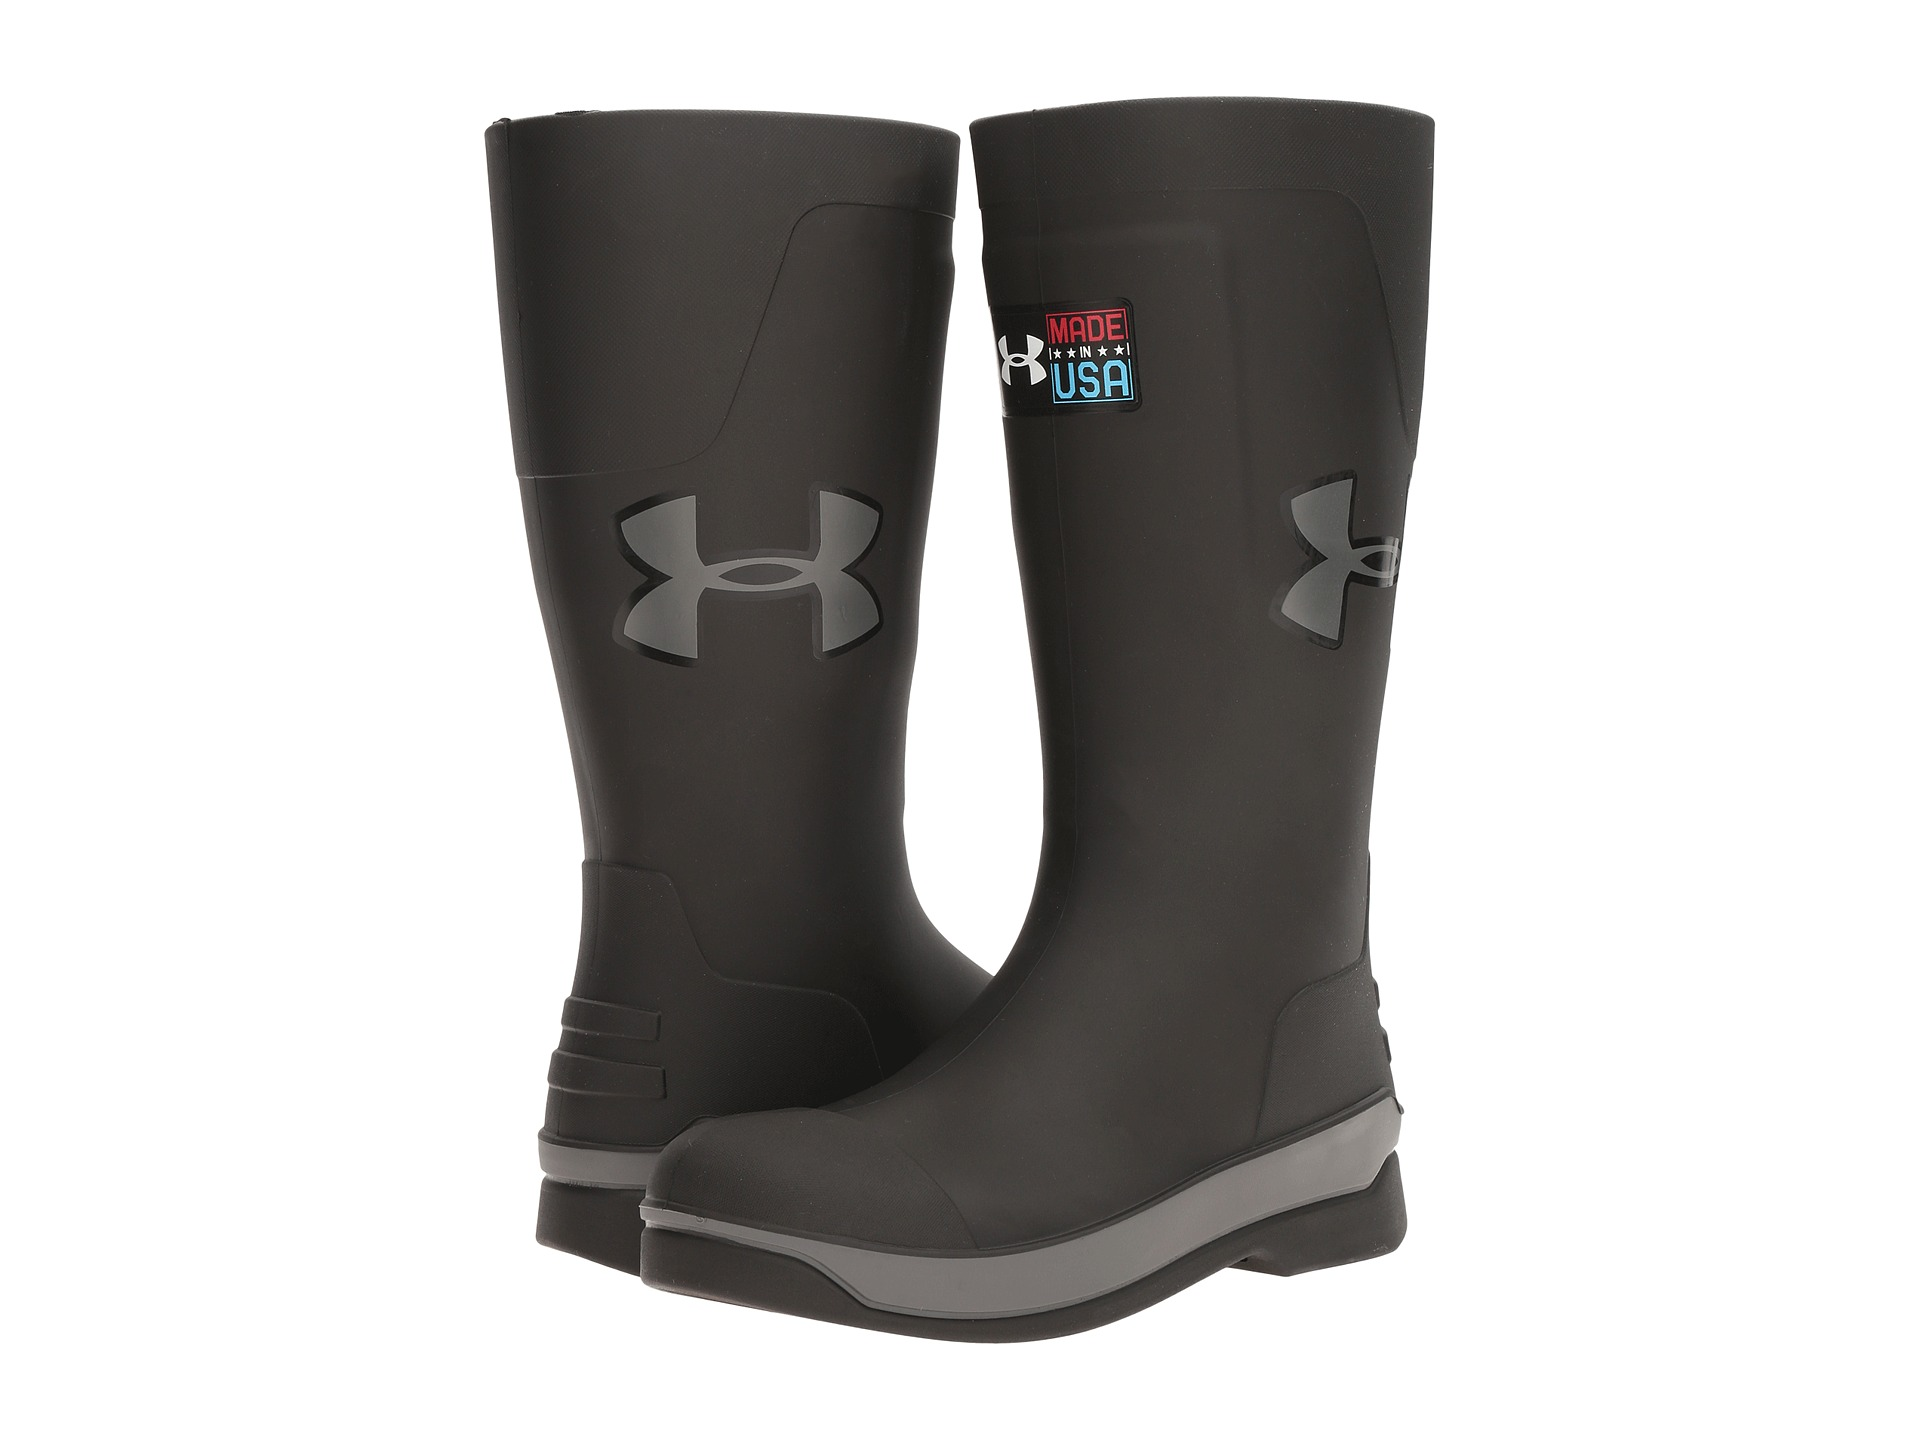 Extra Wide Calf Rain Boots | Shipped Free at Zappos